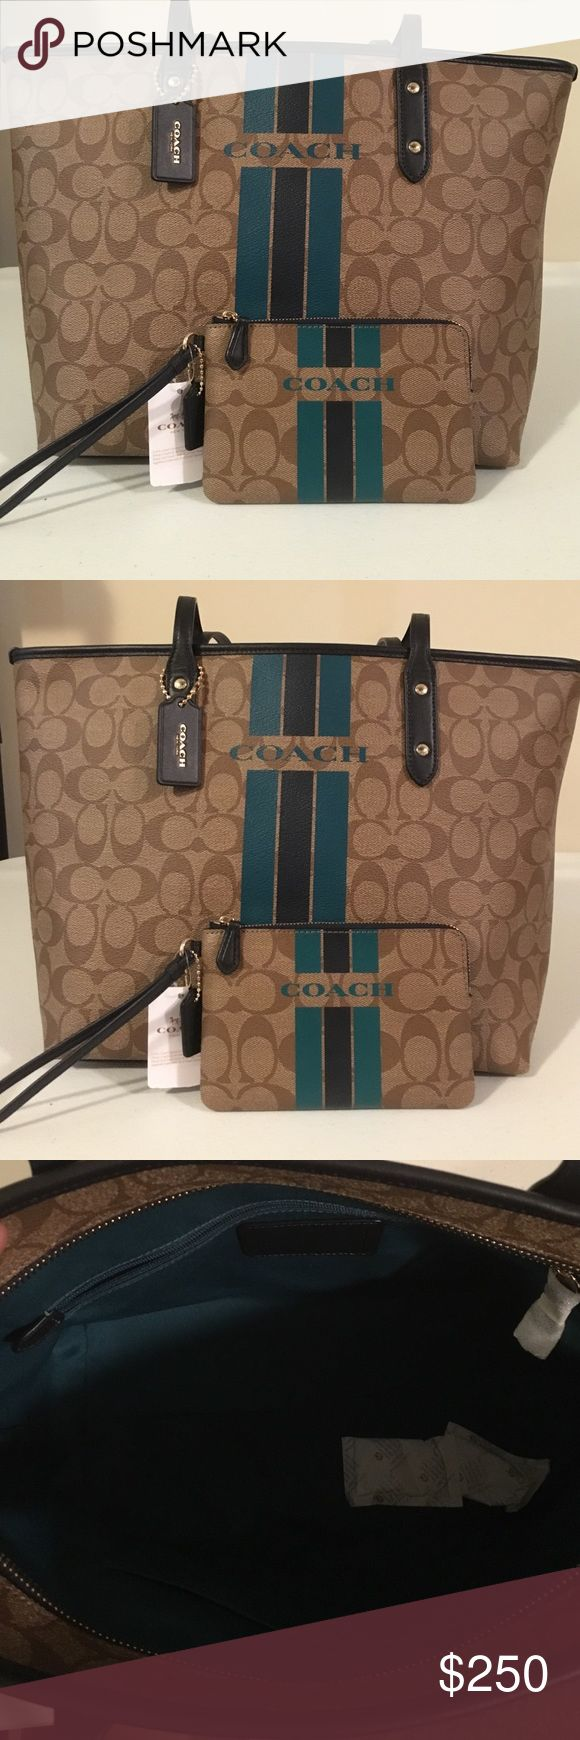 "NWT Coach Varsity City zip Tote with wristlet NWT/ Authentic Coach Tote bag.          Signature coated canvas Inside zip, cell phone and multifunction pockets Dogleash closure, fabric lining Handles with 9 1/2"" drop 17 3/4"" (L) x 10 1/2"" (H) x 5 1/2"" (W). Tote Retail price $295. Wristlet retail price $80.                                   Feel free to make a reasonable offer. Use the offer button. I also sell on Ⓜ️ Thanks for looking NO TRADES Coach Bags Totes"